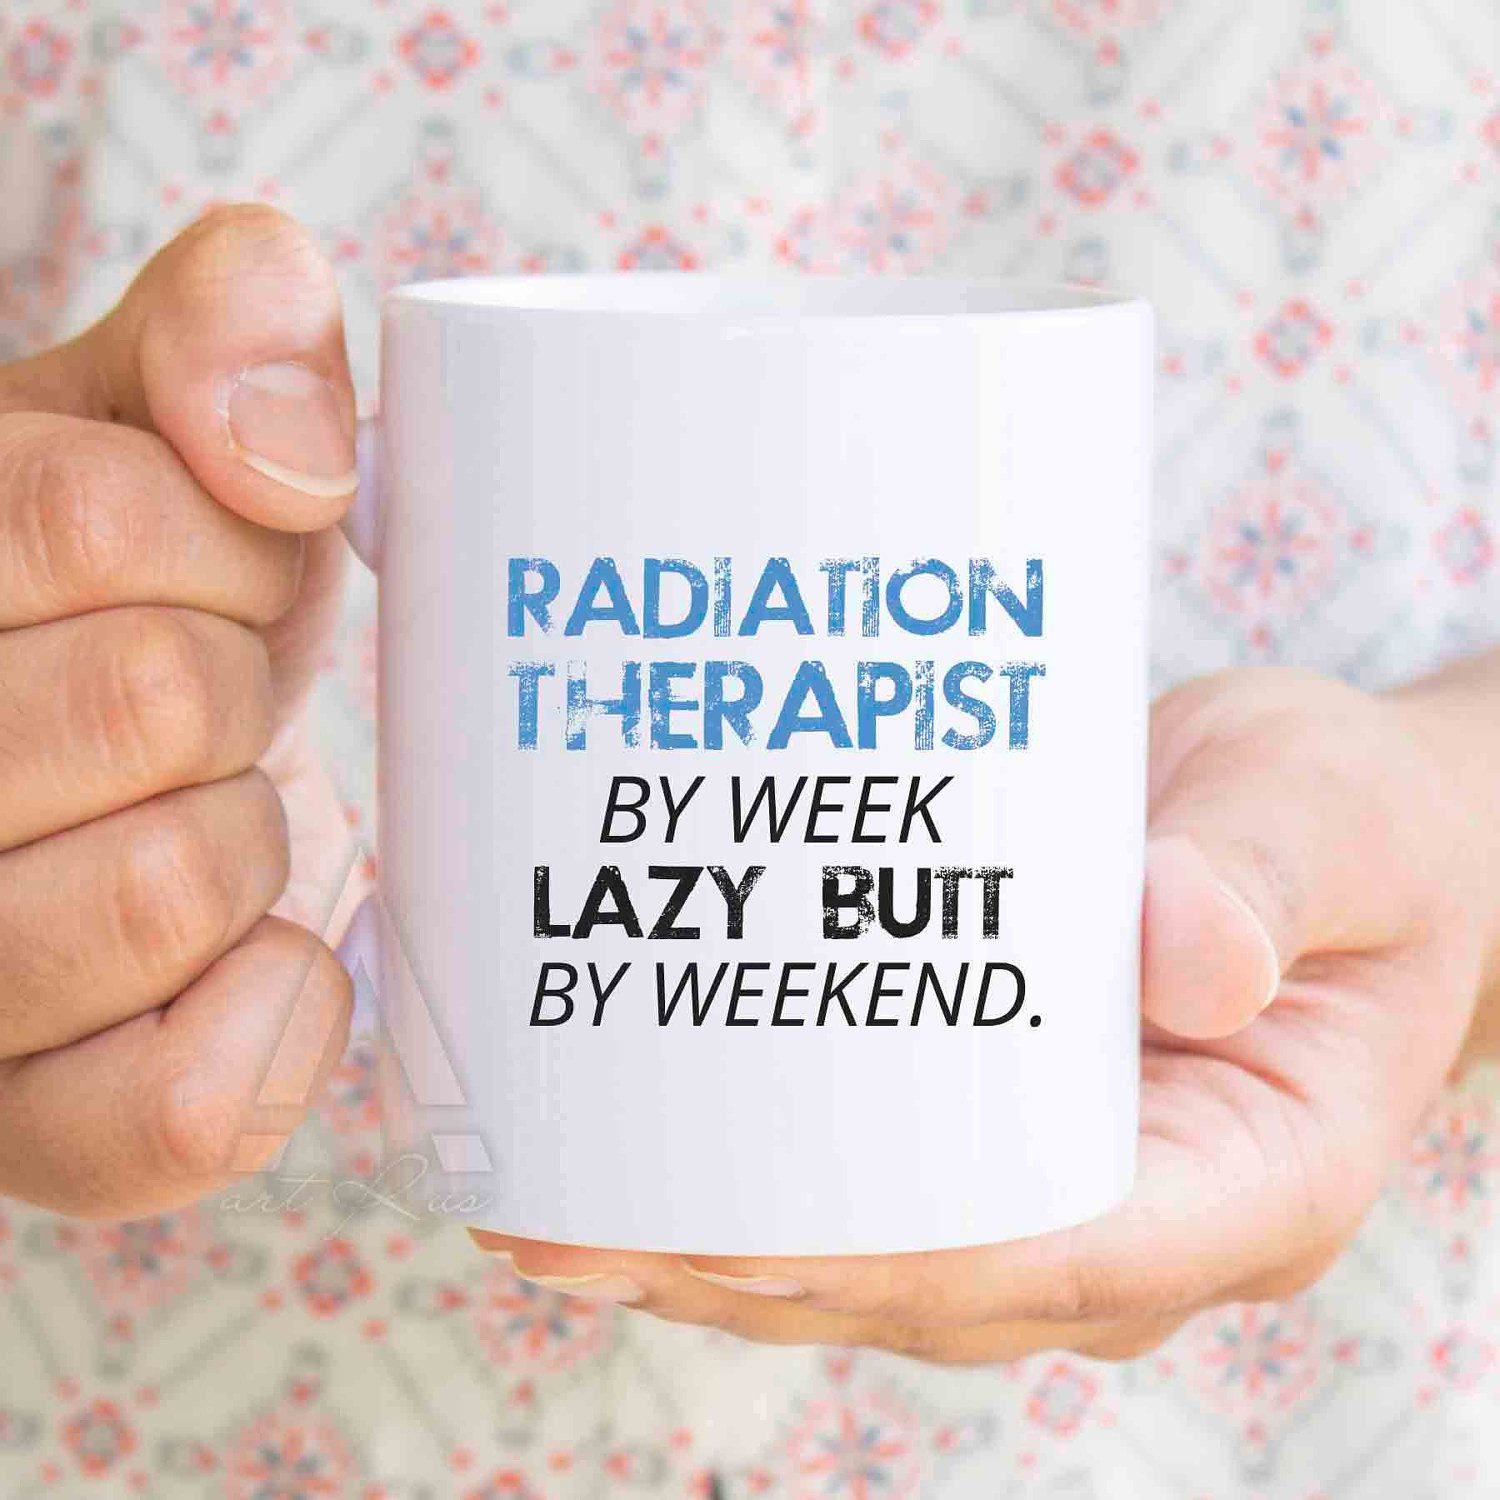 Radiation Therapist By Week Lazy Butt By Weekend, Funny Coffee